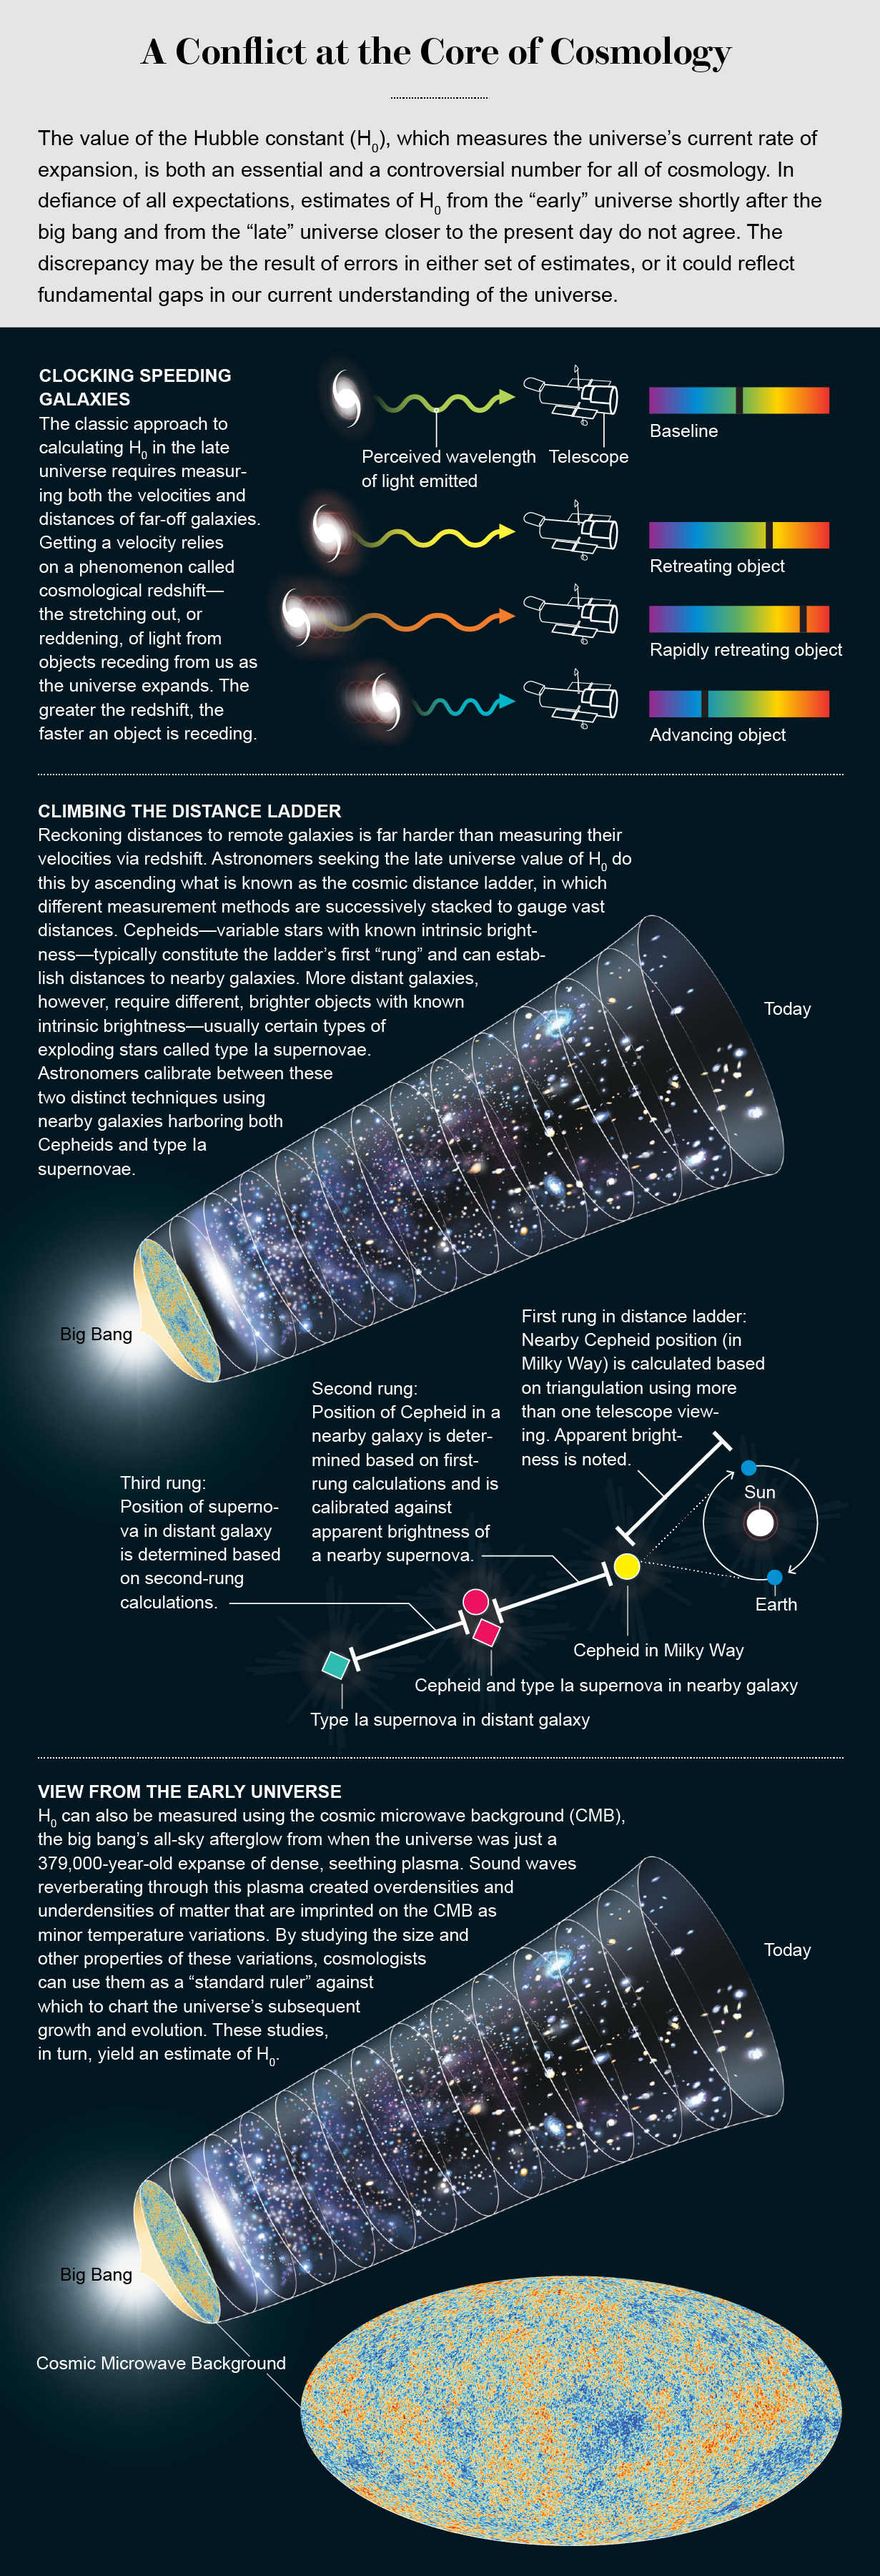 Graphic demonstrates how scientists measure both velocity and distance of far-off galaxies, in a quest for the Hubble constant